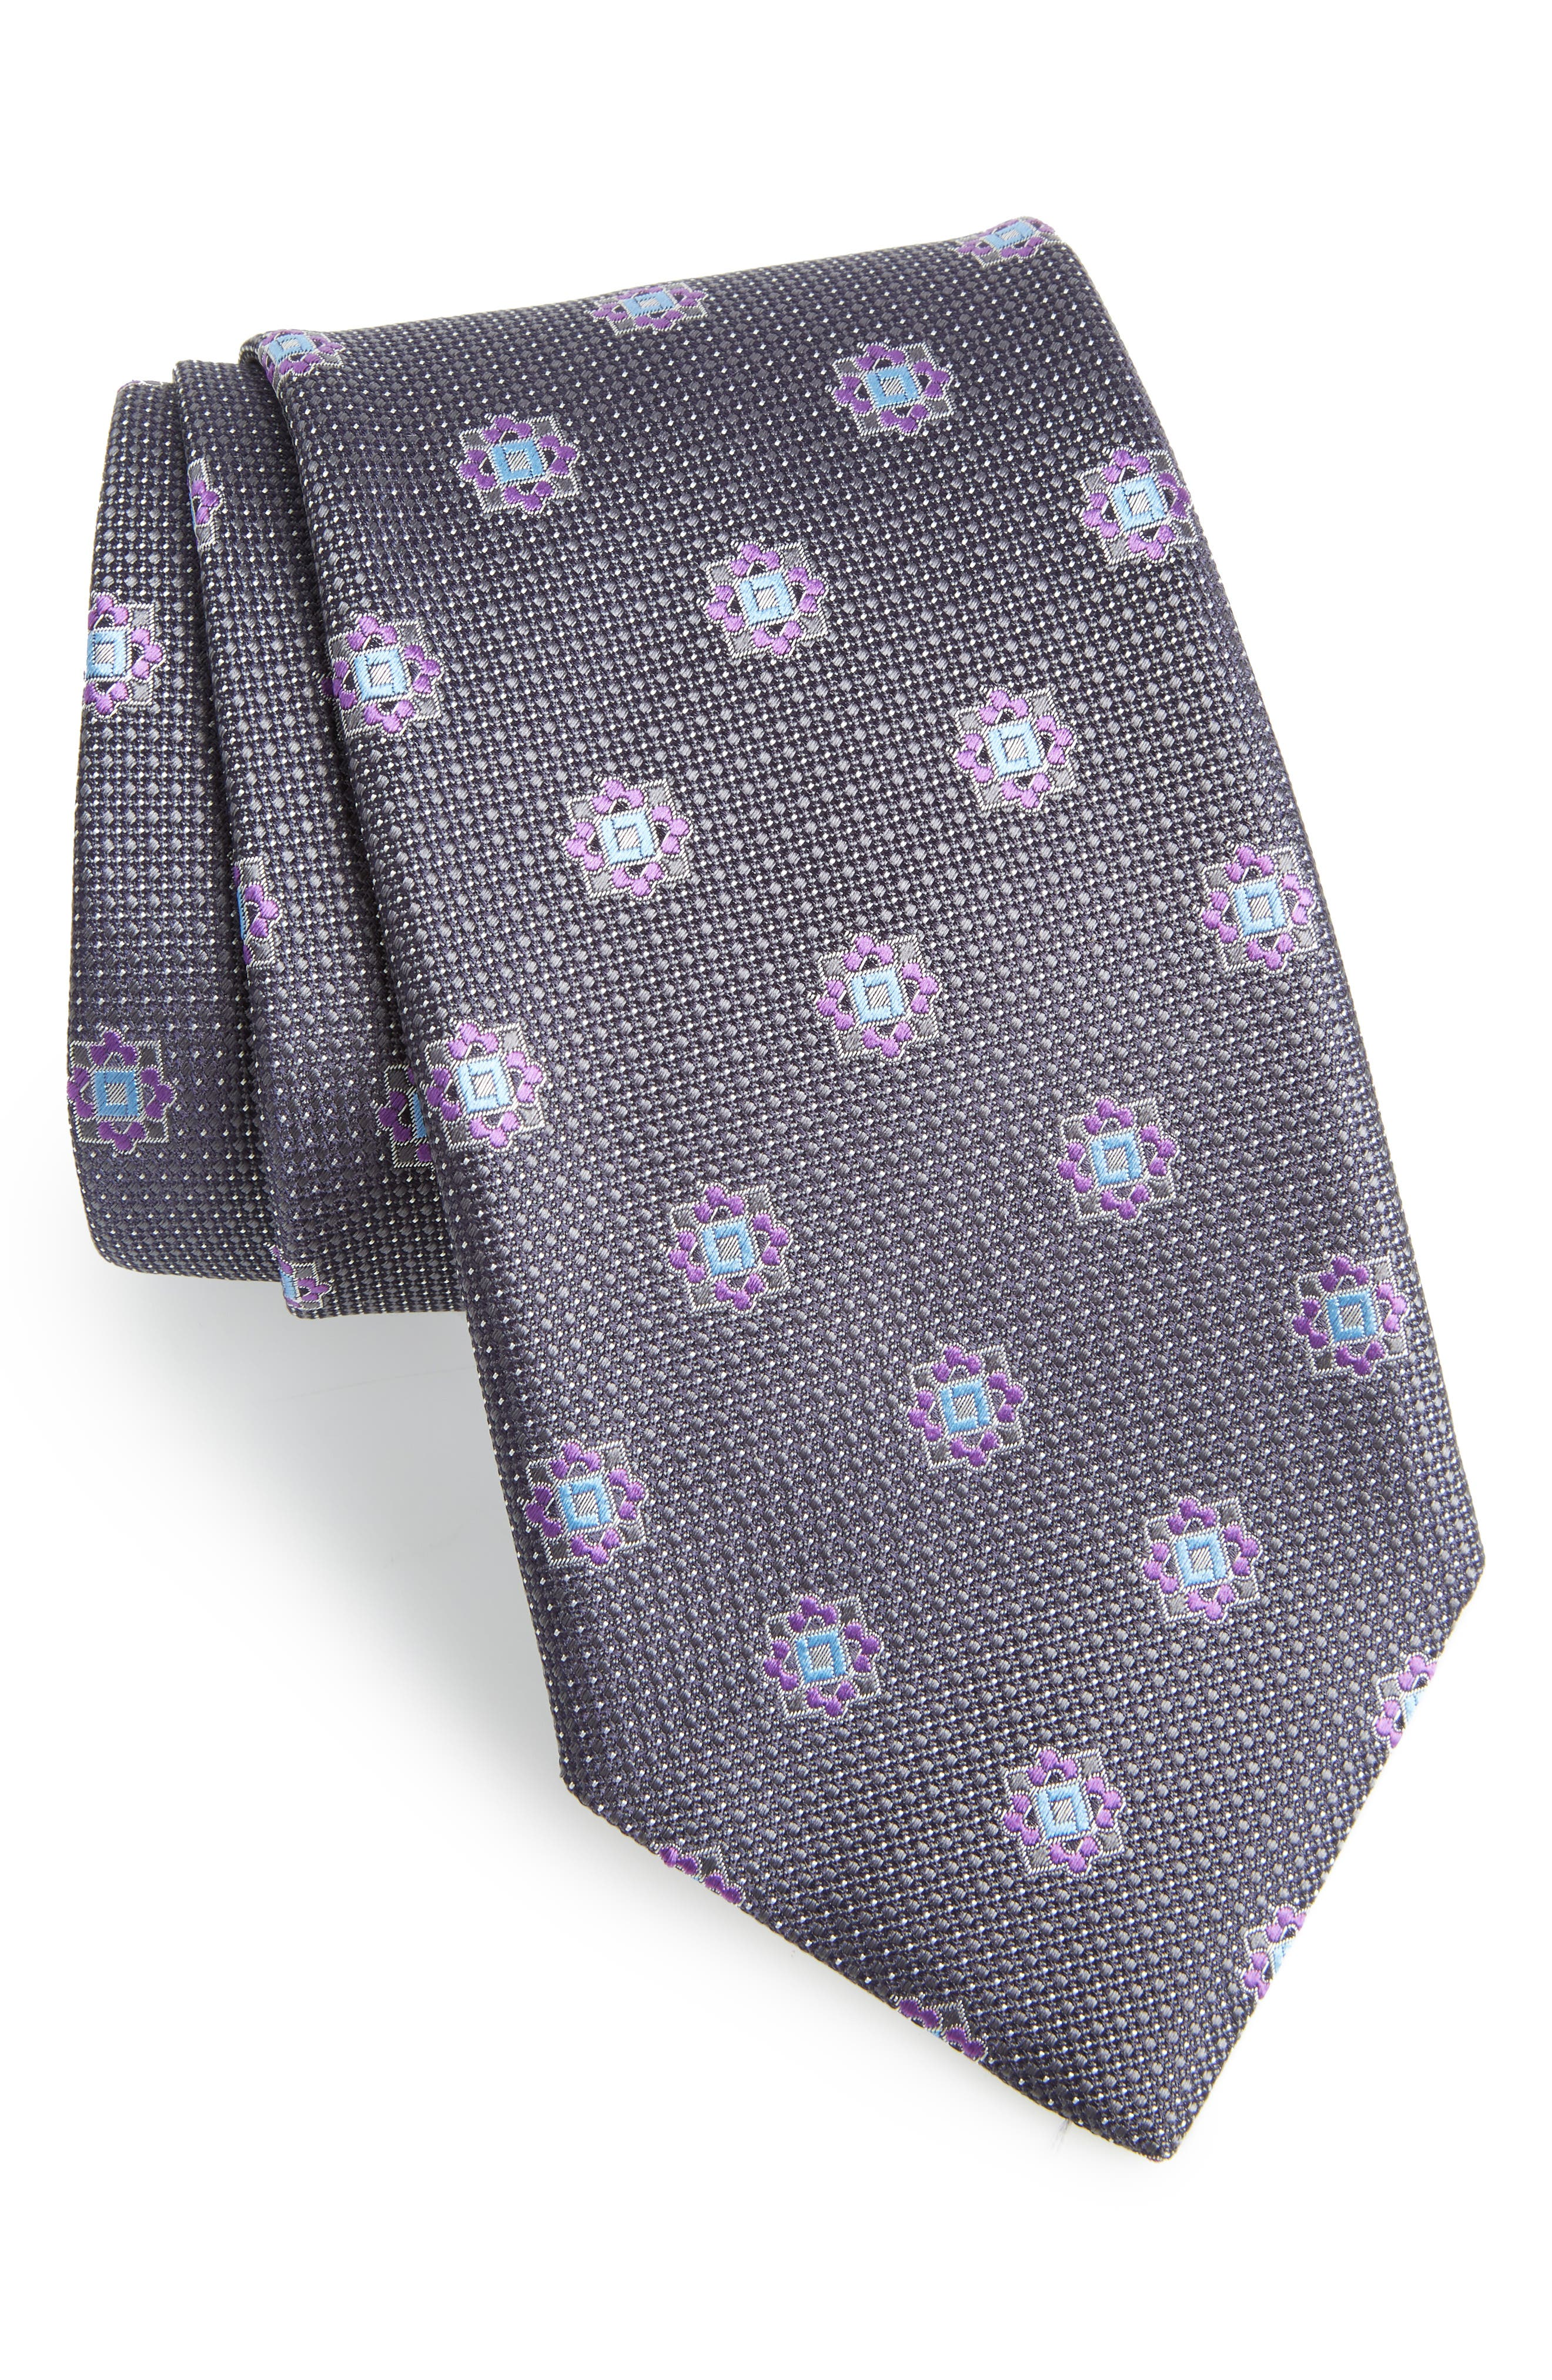 Medallion Silk Tie,                             Main thumbnail 1, color,                             GREY